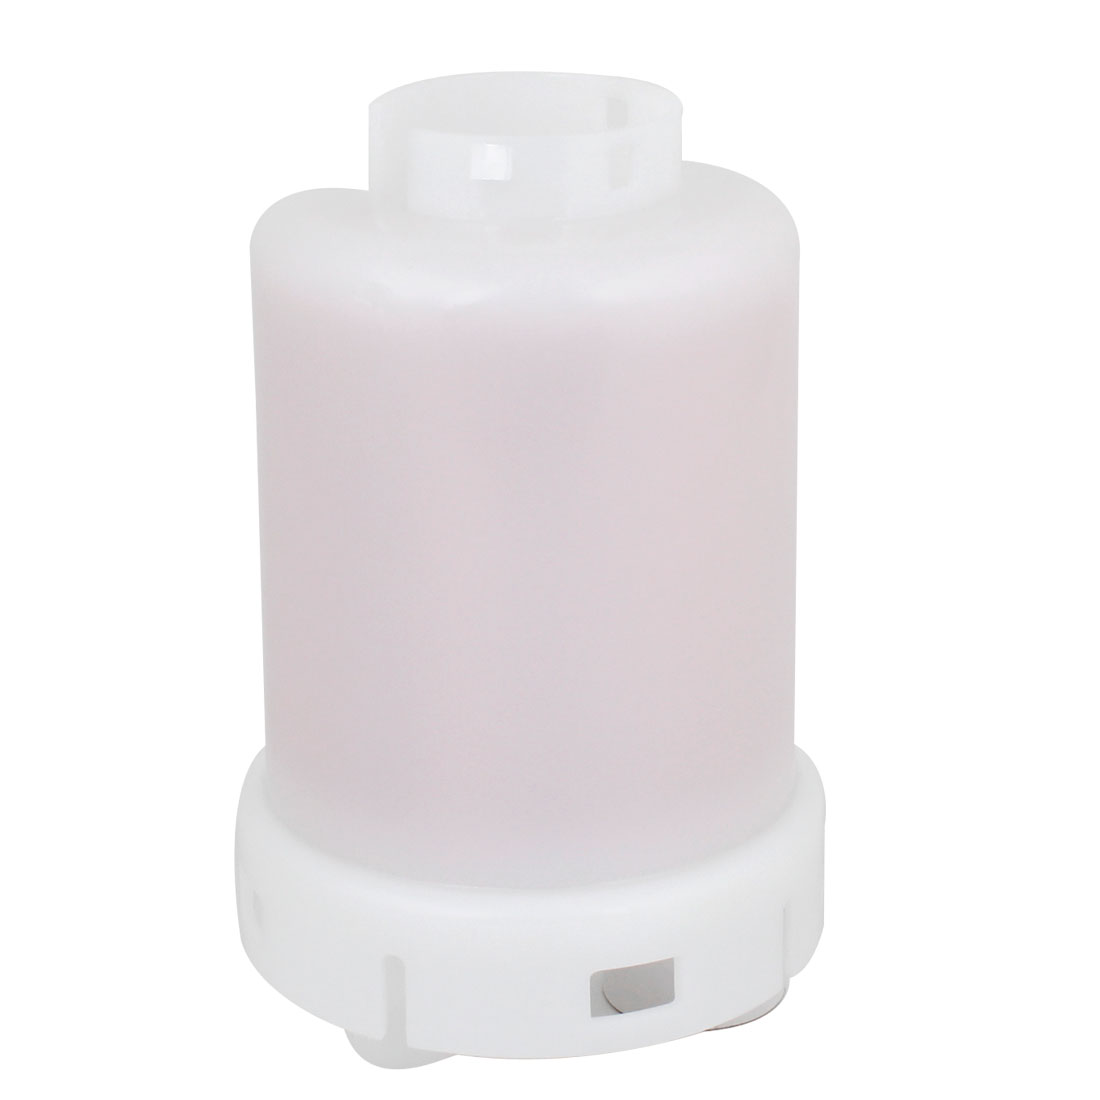 Vehicle Car White Plastic Oil Fuel Filter Assembly MR526974